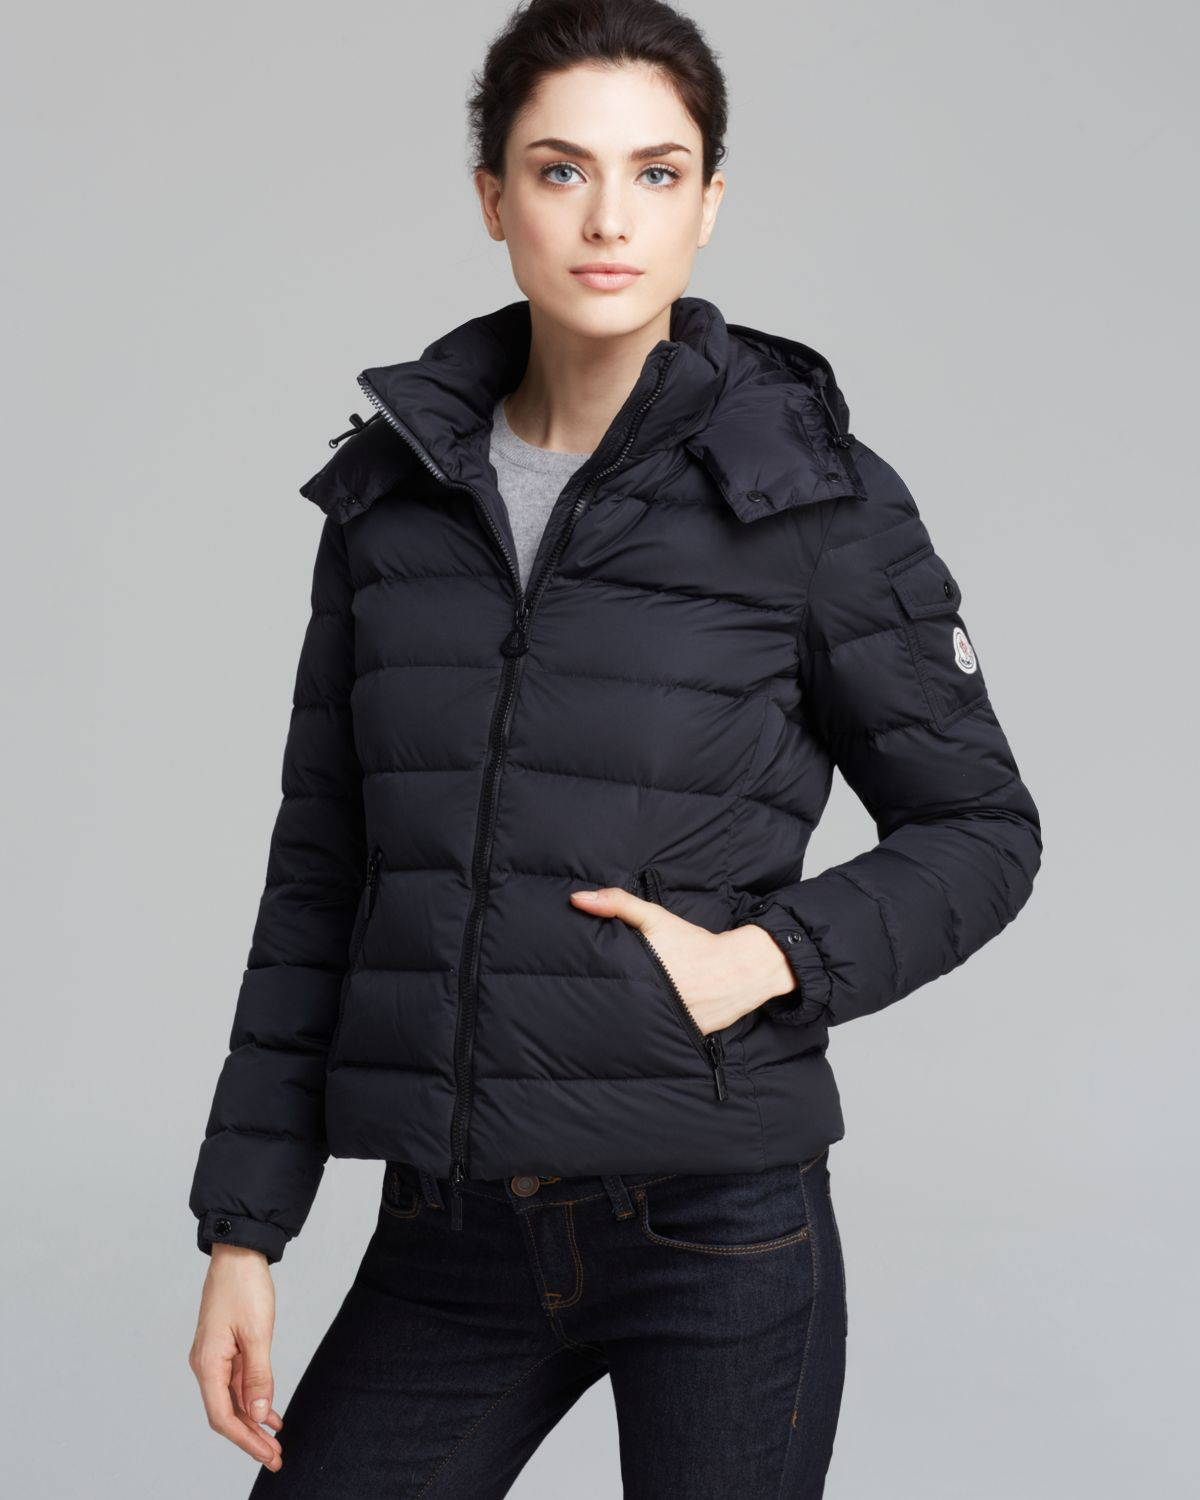 Moncler Badymat Short Down Jacket in Black | Lyst